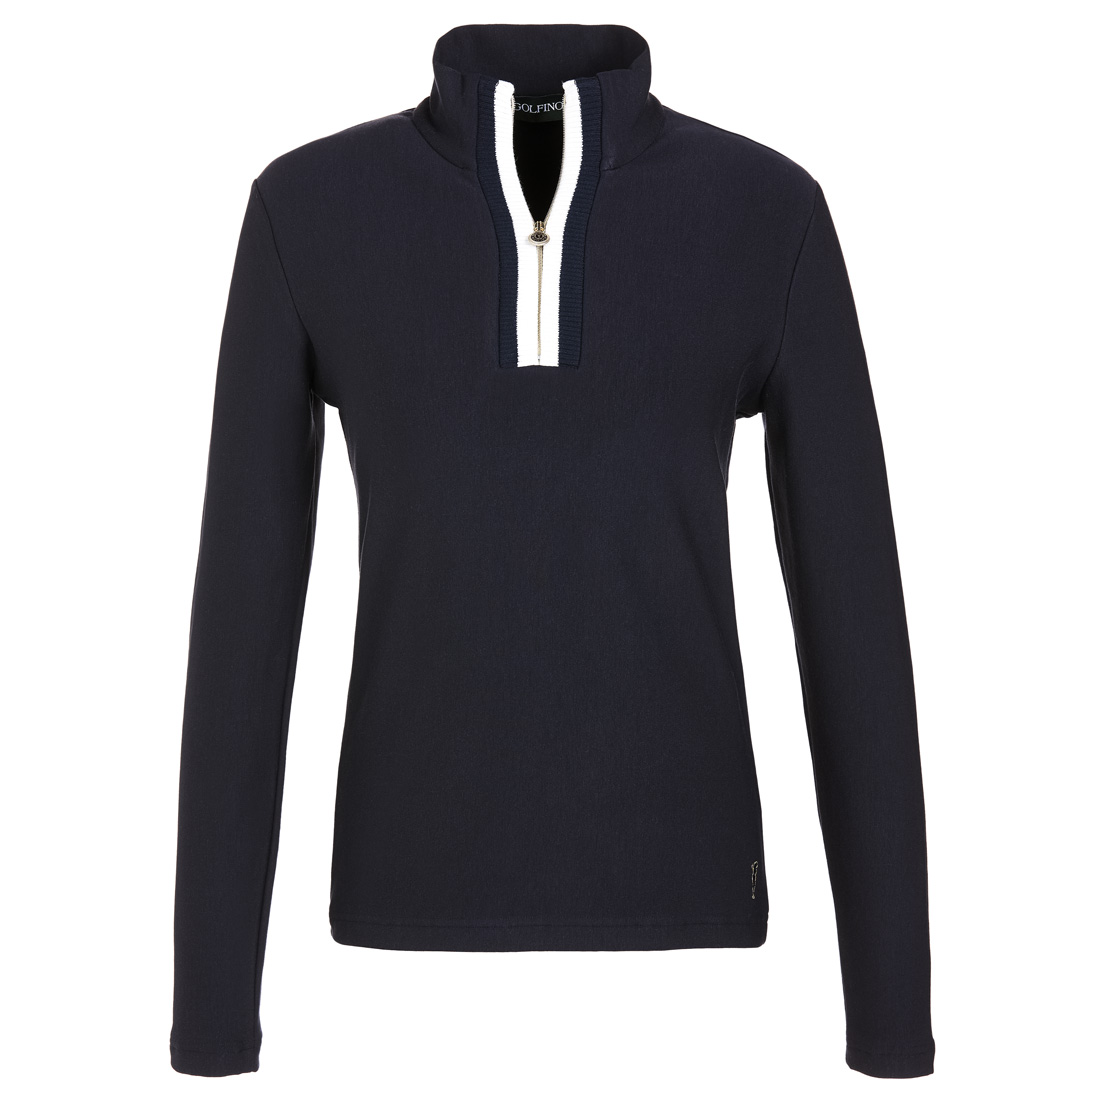 Damen Sweatshirt mit Troyer Kragen und Cold Protektion